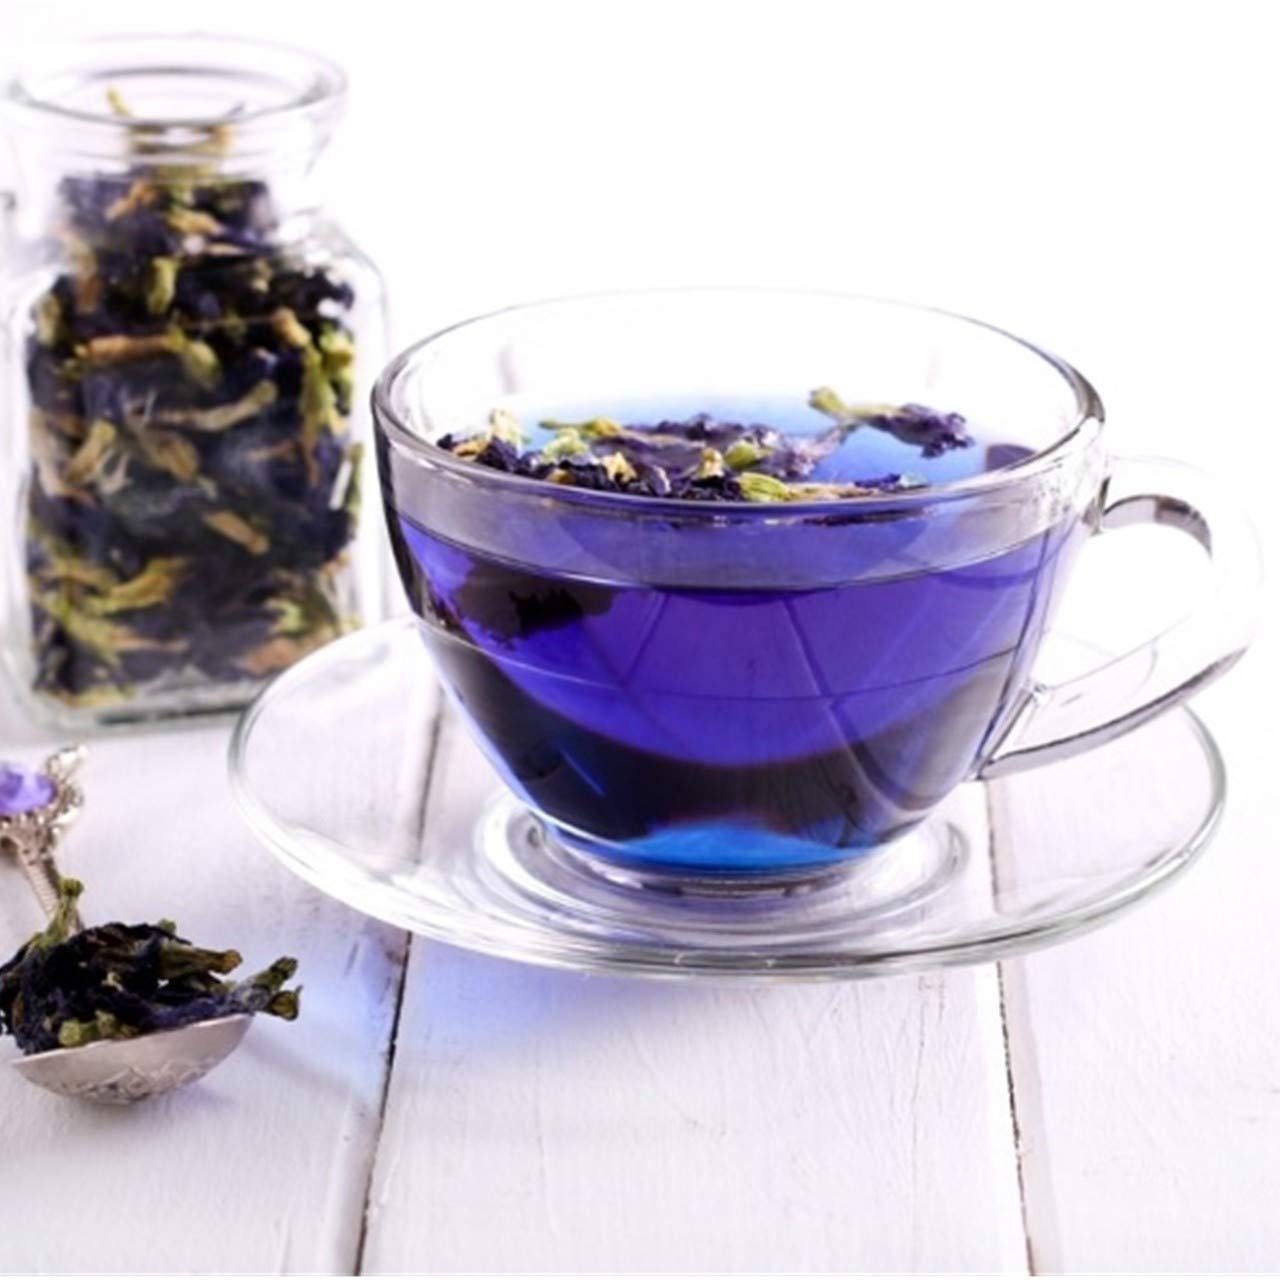 BLUE TEA - Butterfly Pea Flower- Certified Organic | 100 Cups - 25 ...